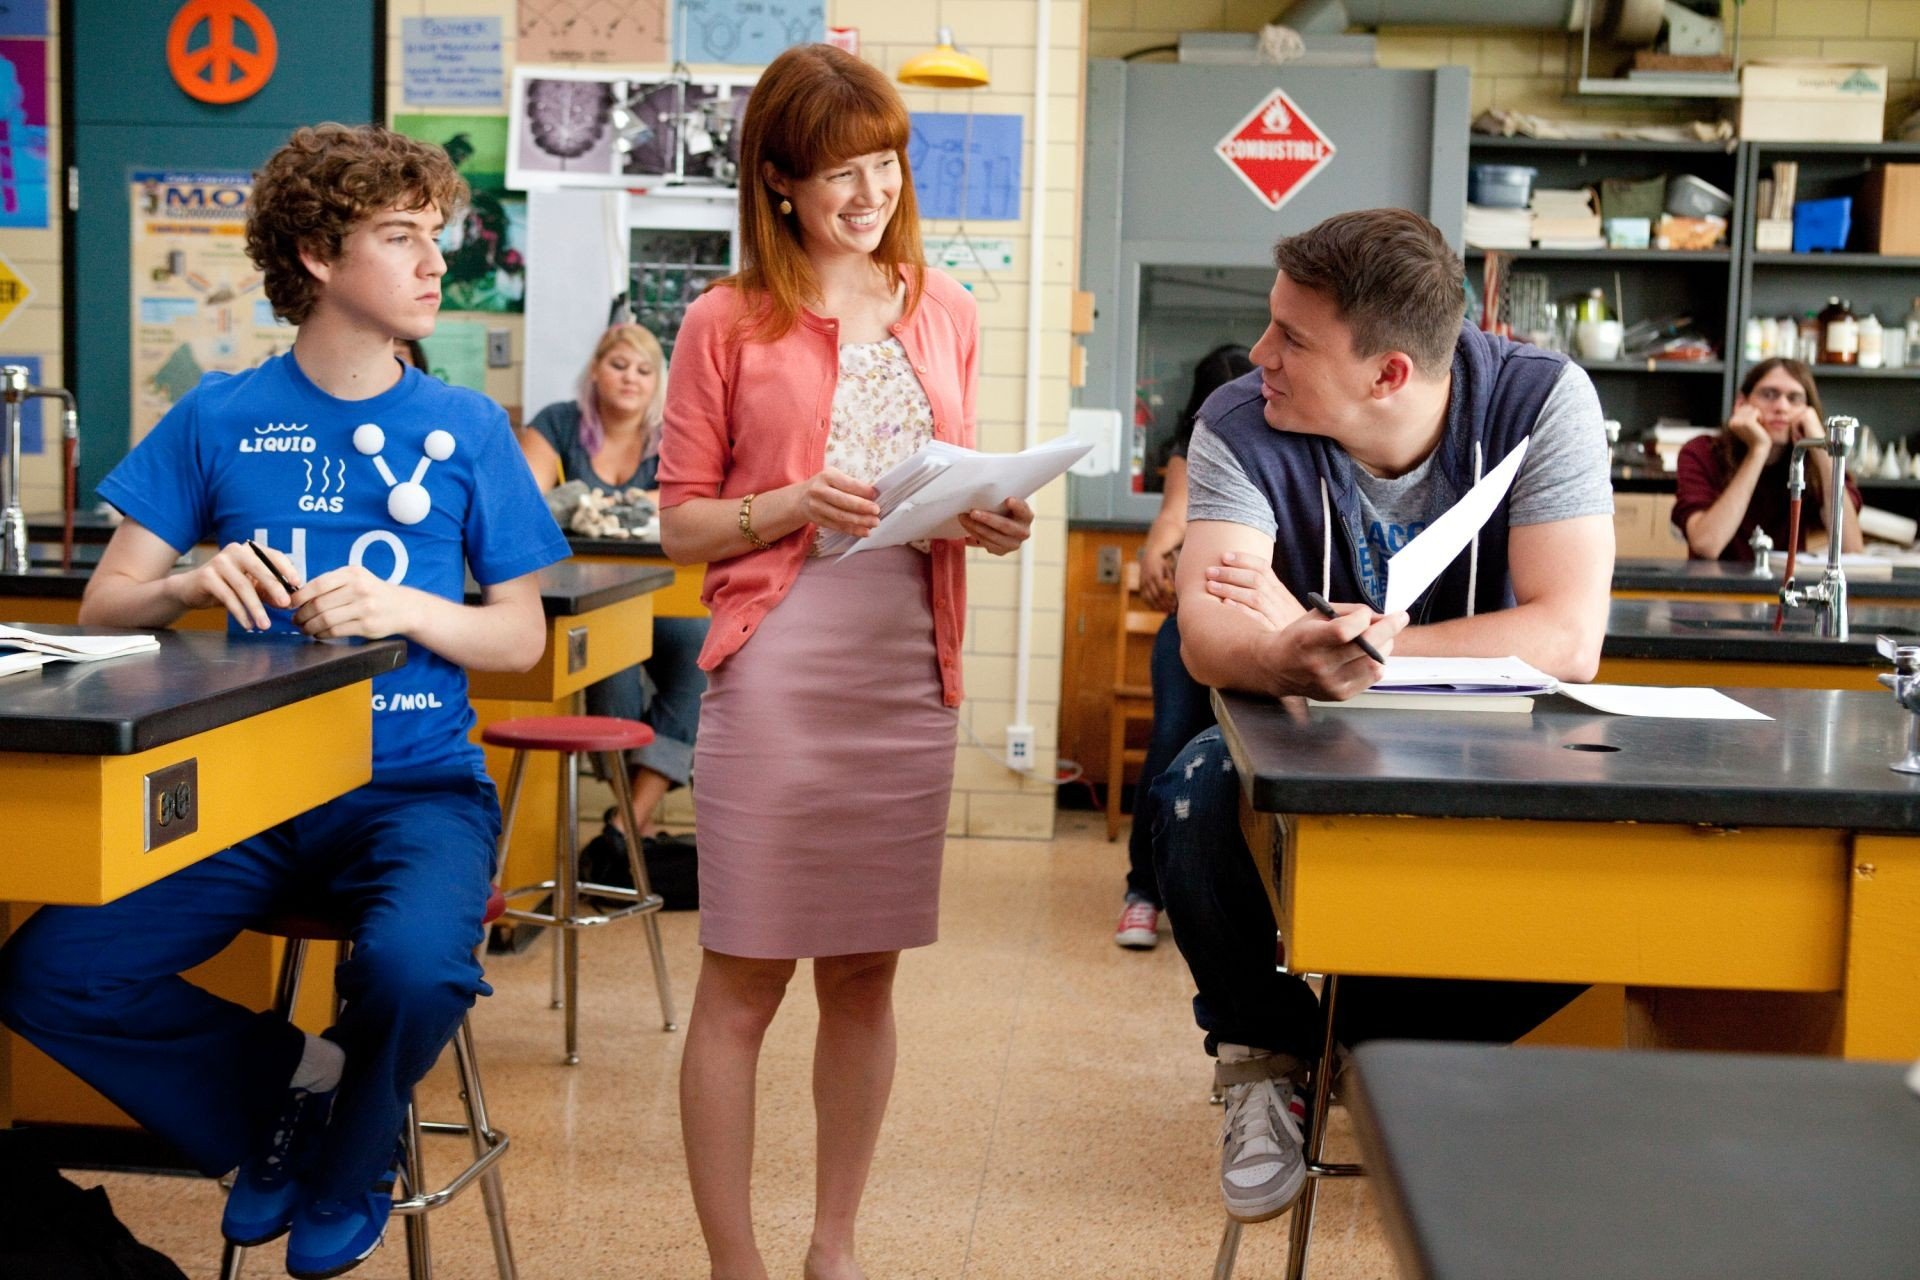 Ellie Kemper stars as Ms. Griggs and Channing Tatum stars as Jenko in Columbia Pictures' 21 Jump Street (2012)